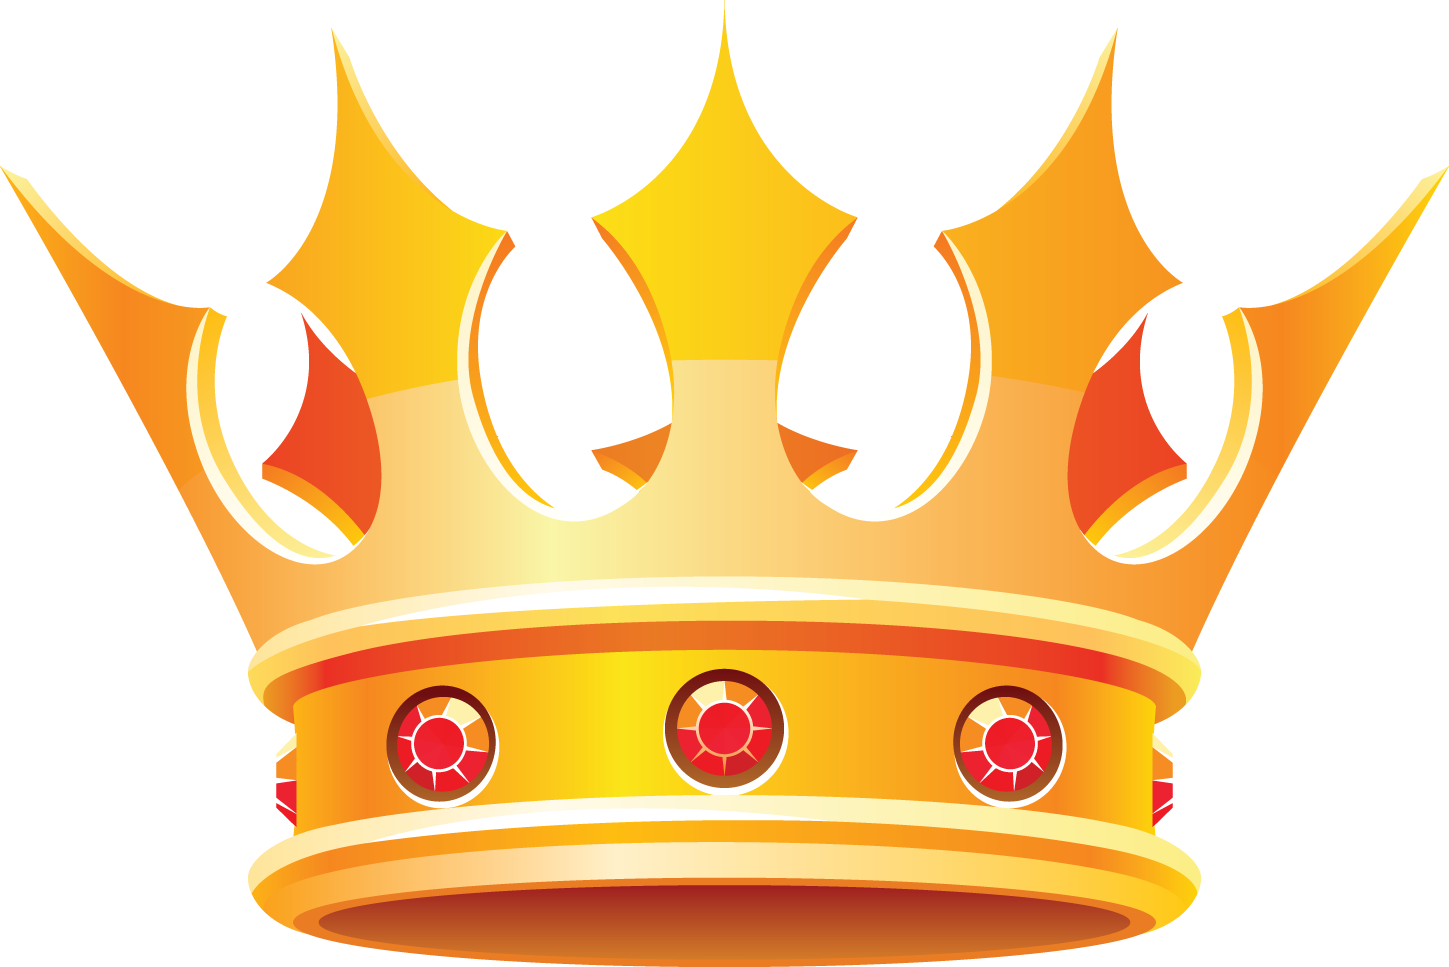 Tilted crown clipart clip art transparent Queen Crown Clipart at GetDrawings.com | Free for personal use Queen ... clip art transparent